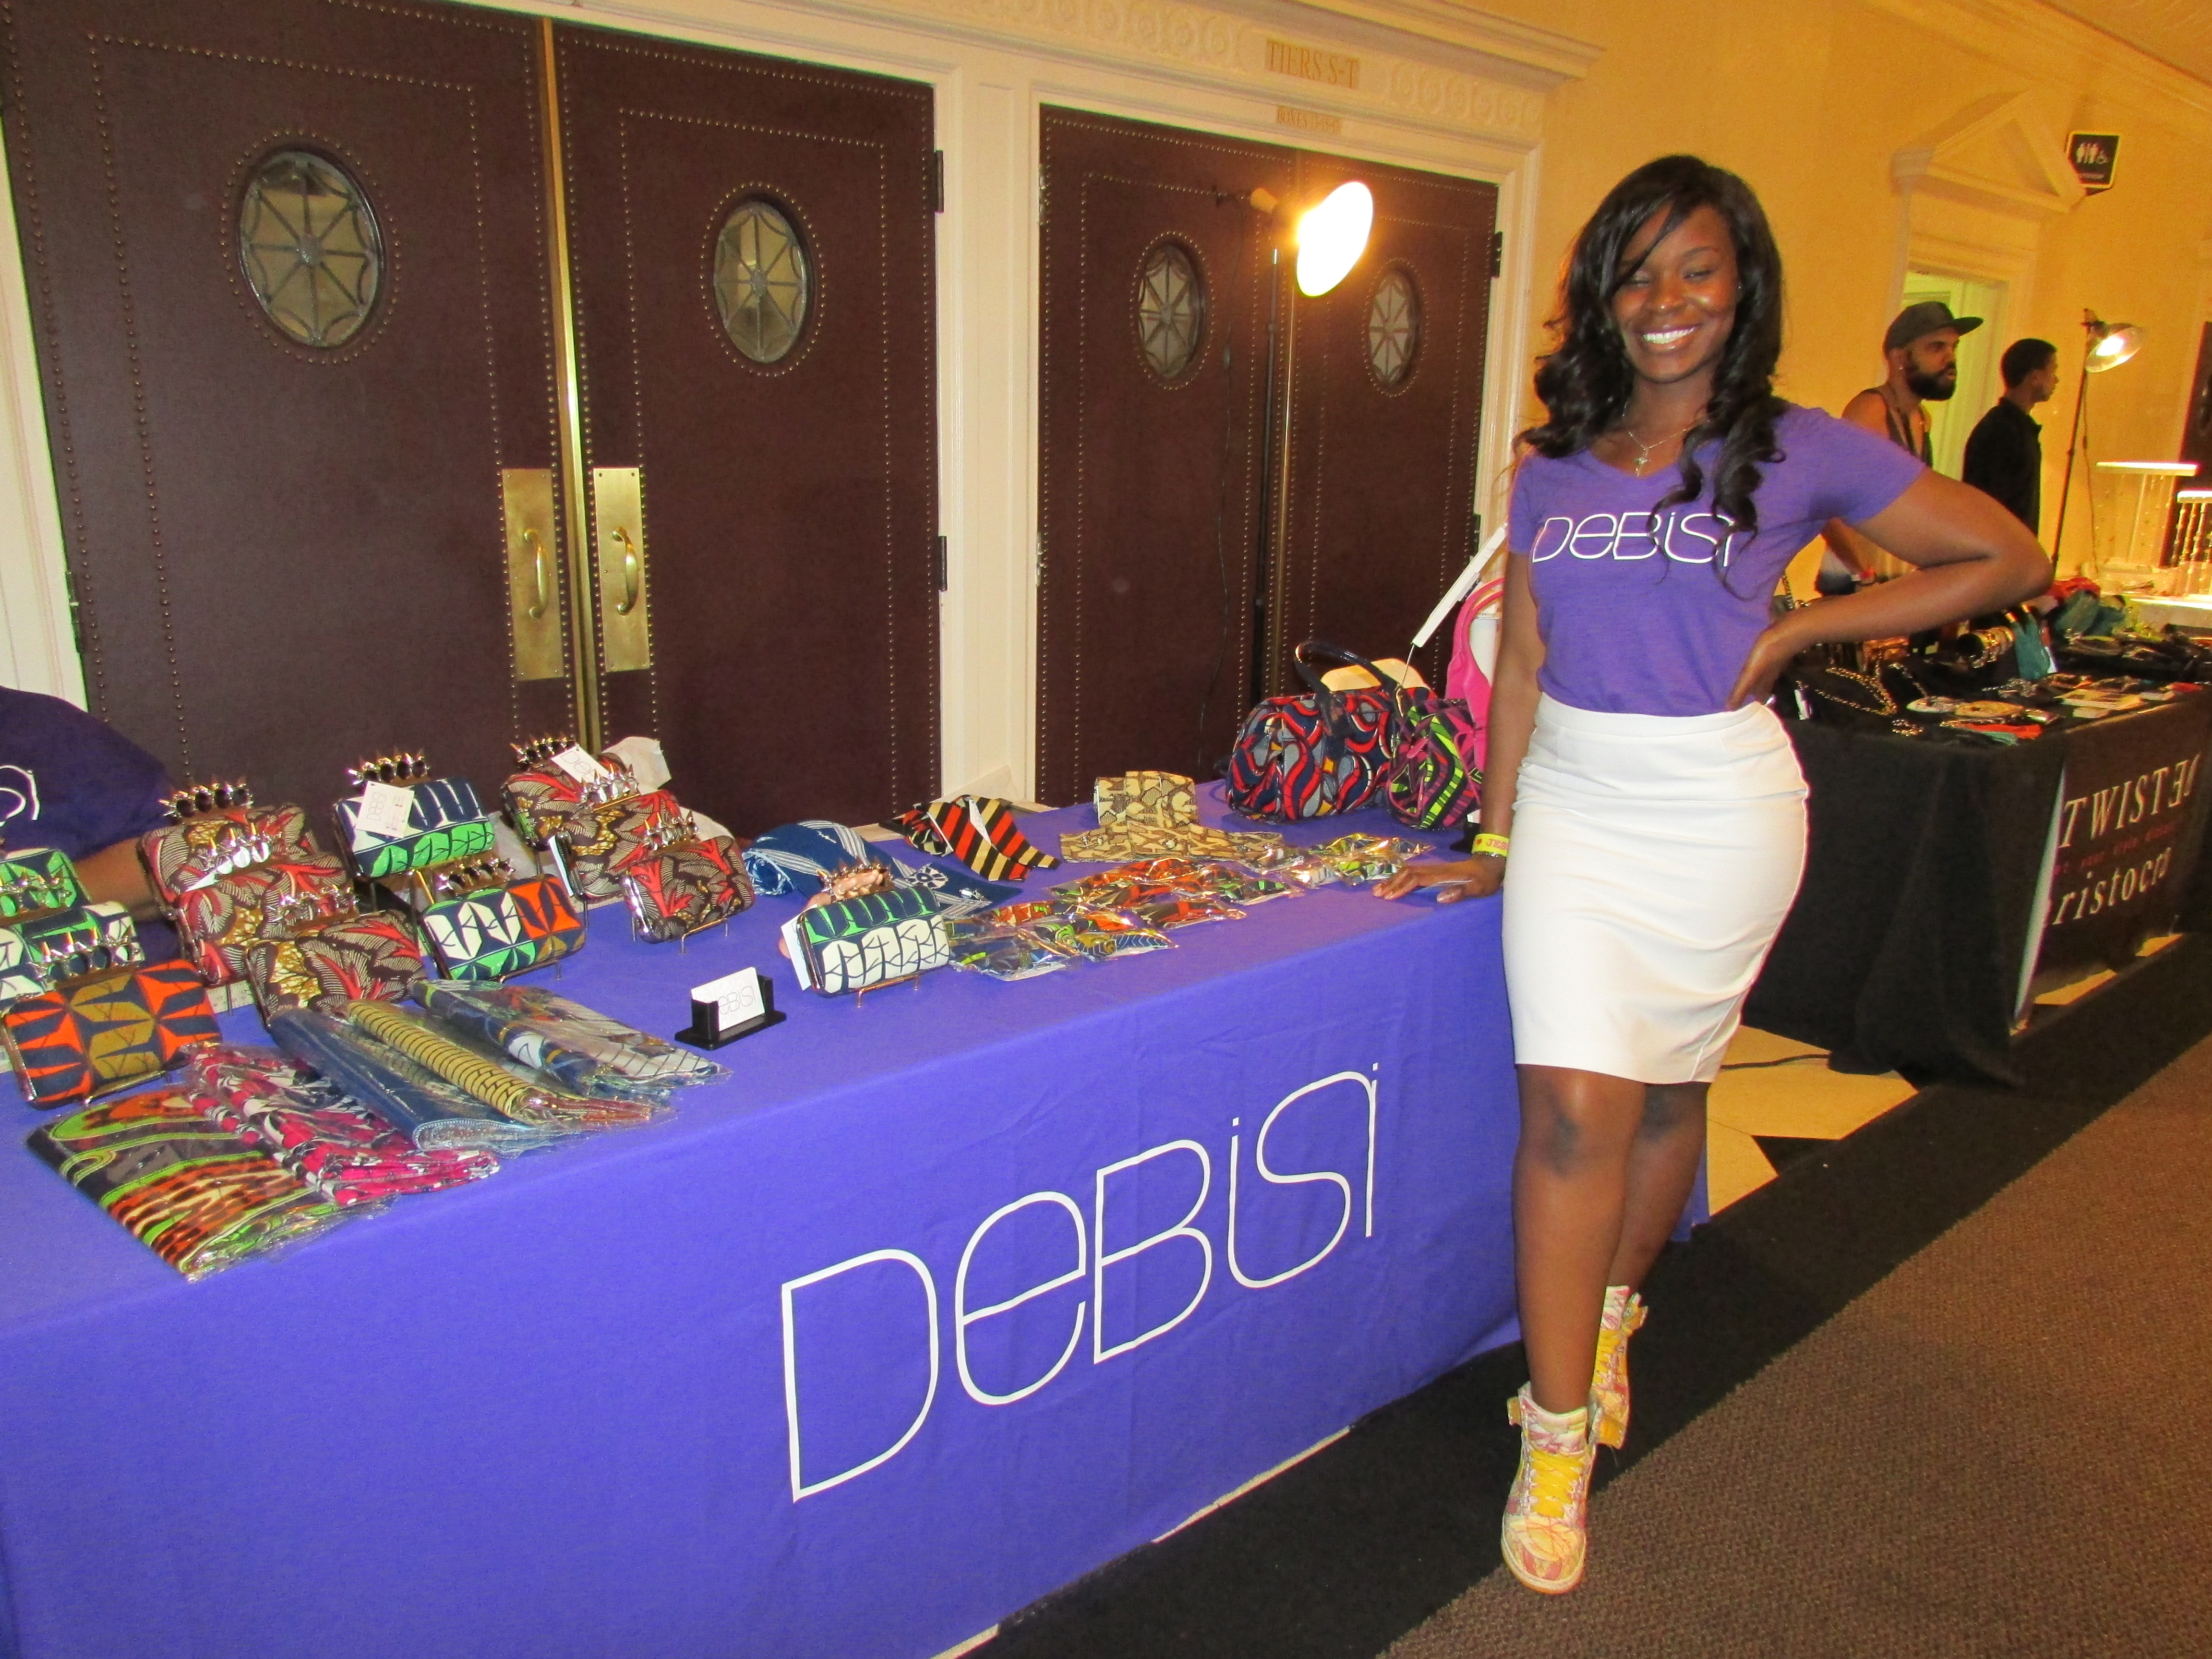 Ms. Debisi. Check her out!